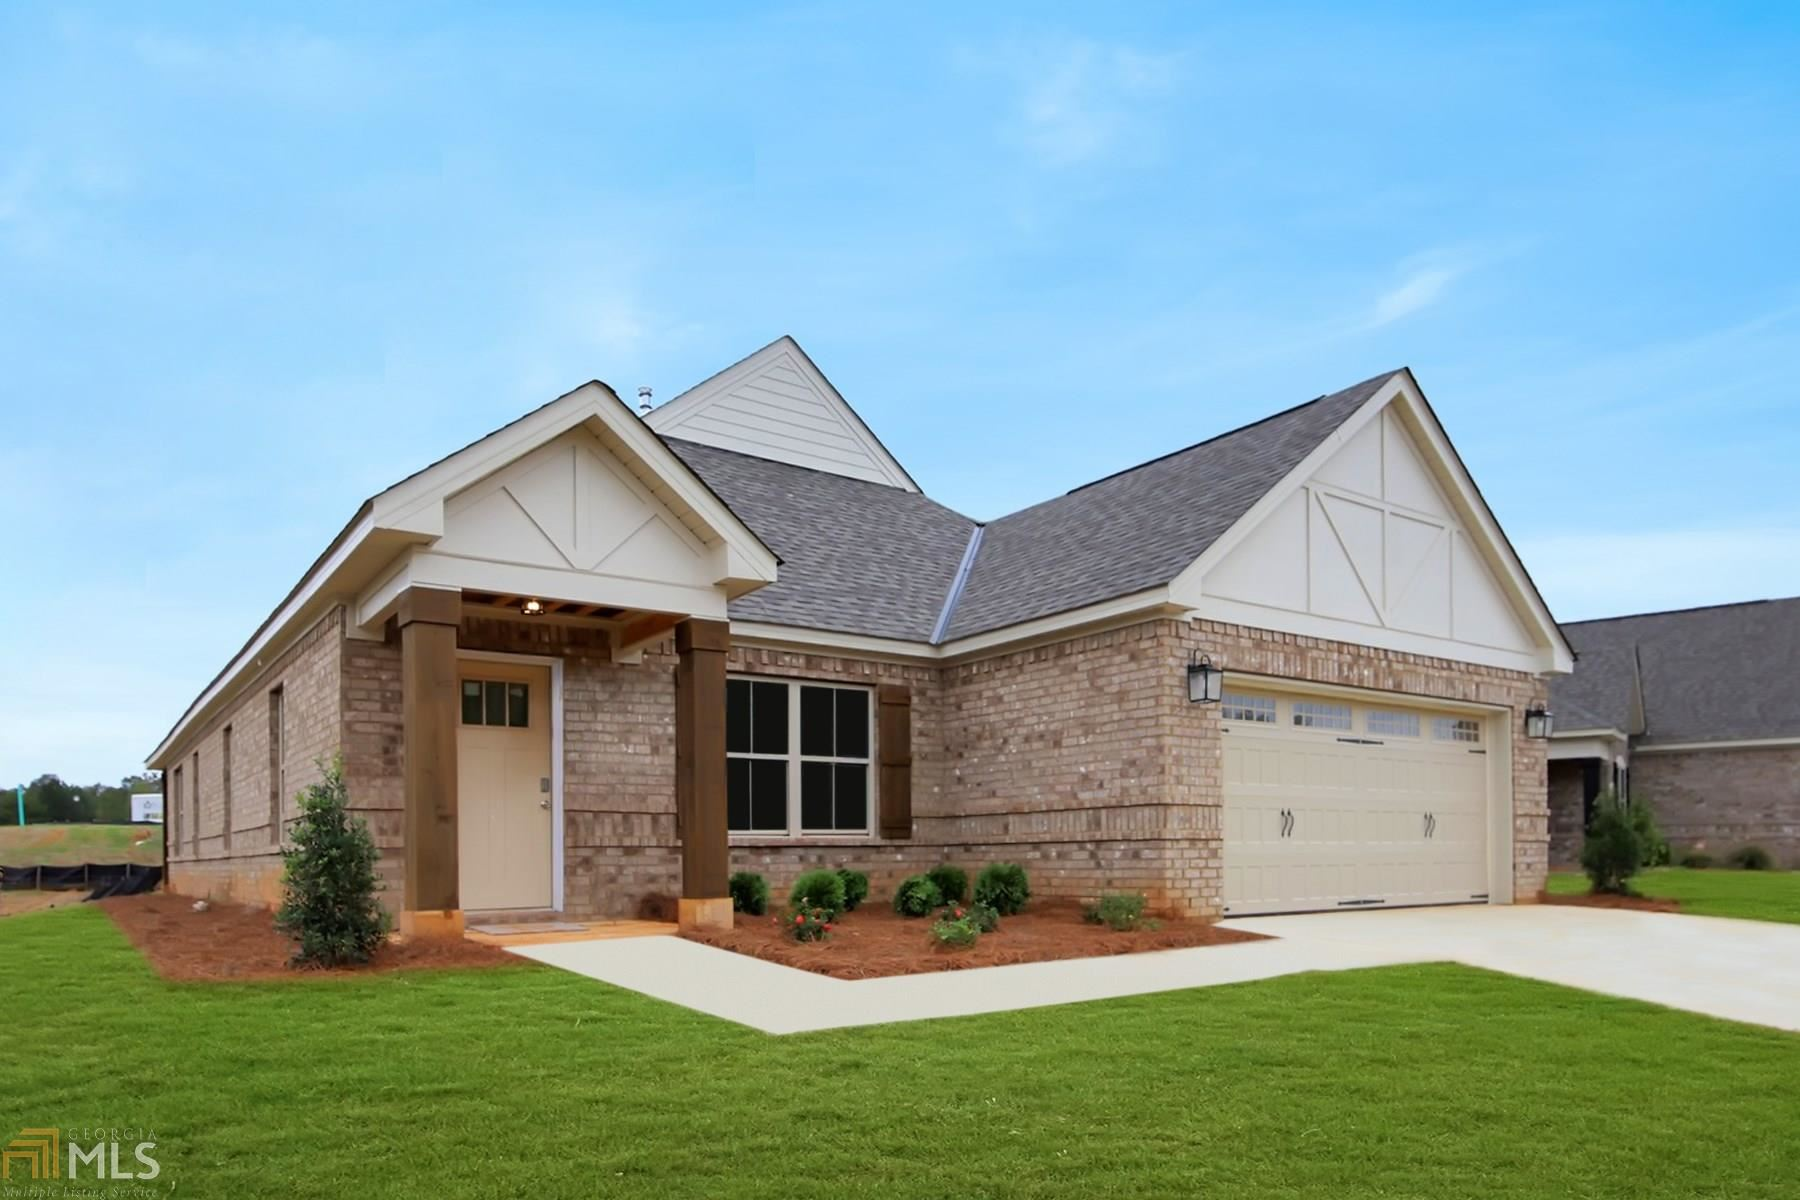 520 Lago Ct, LaGrange, GA 30241 - #: 8828385